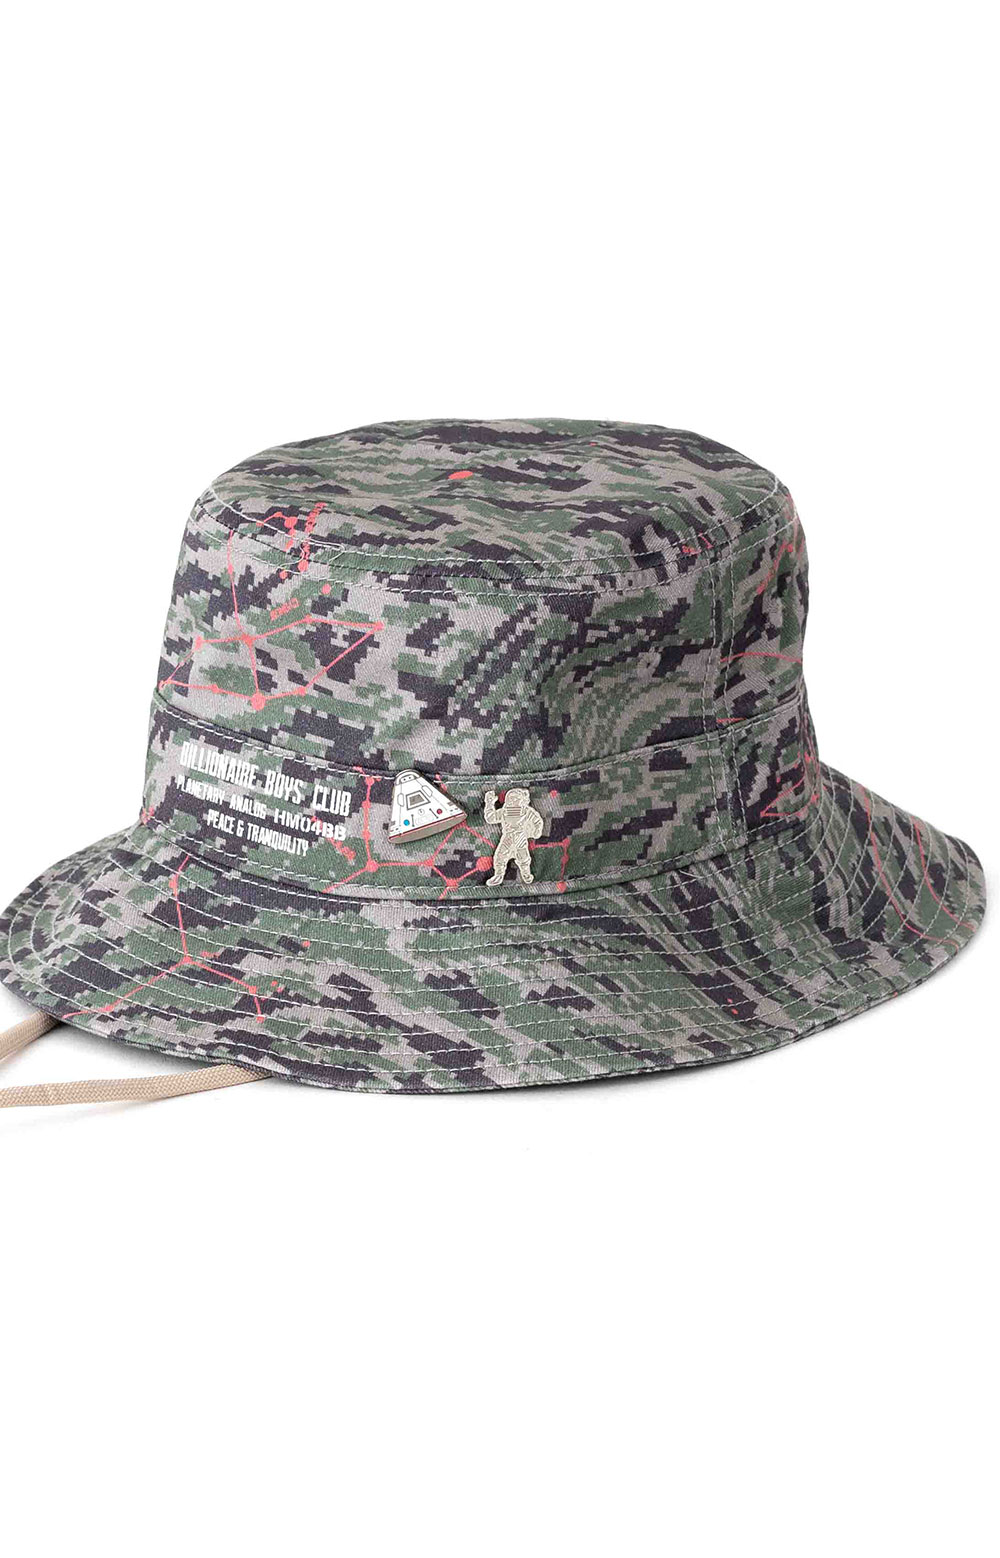 BB Moonrock Bucket Hat - Goat